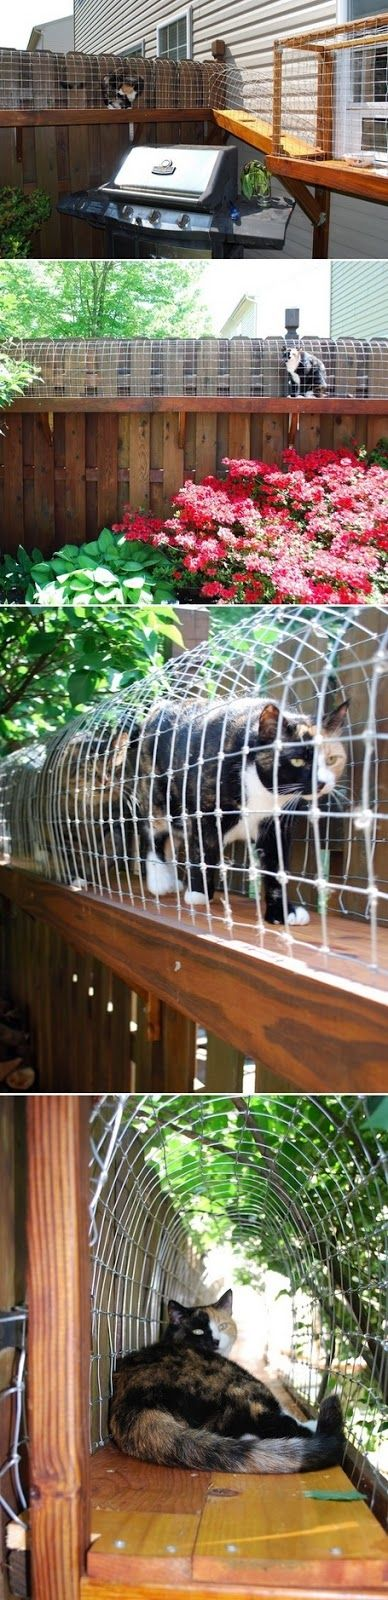 How to Build a Cat Enclosure